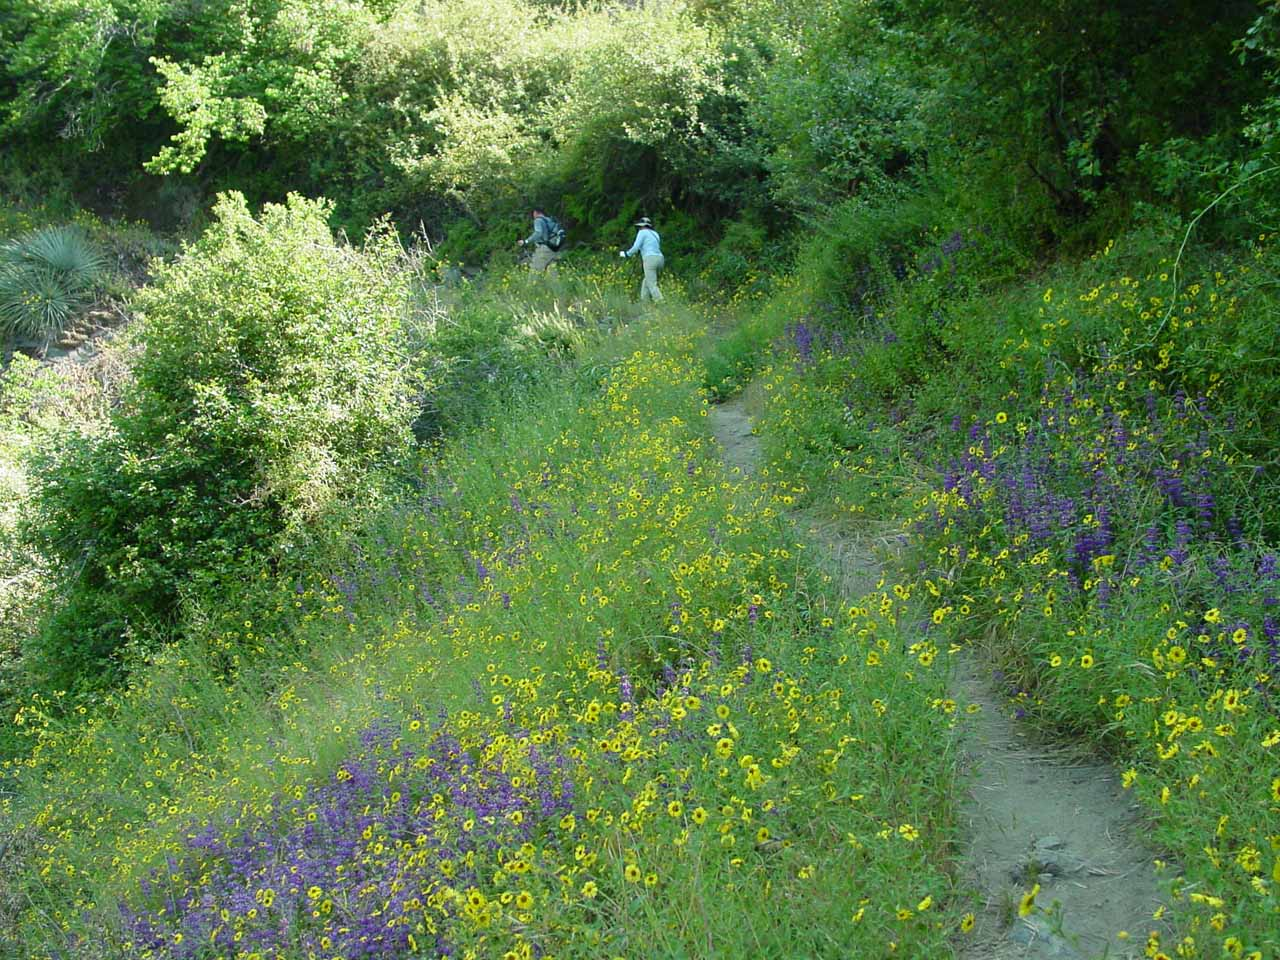 Lots of wildflowers (as well as tick-infested overgrowth) flanking the narrow trail